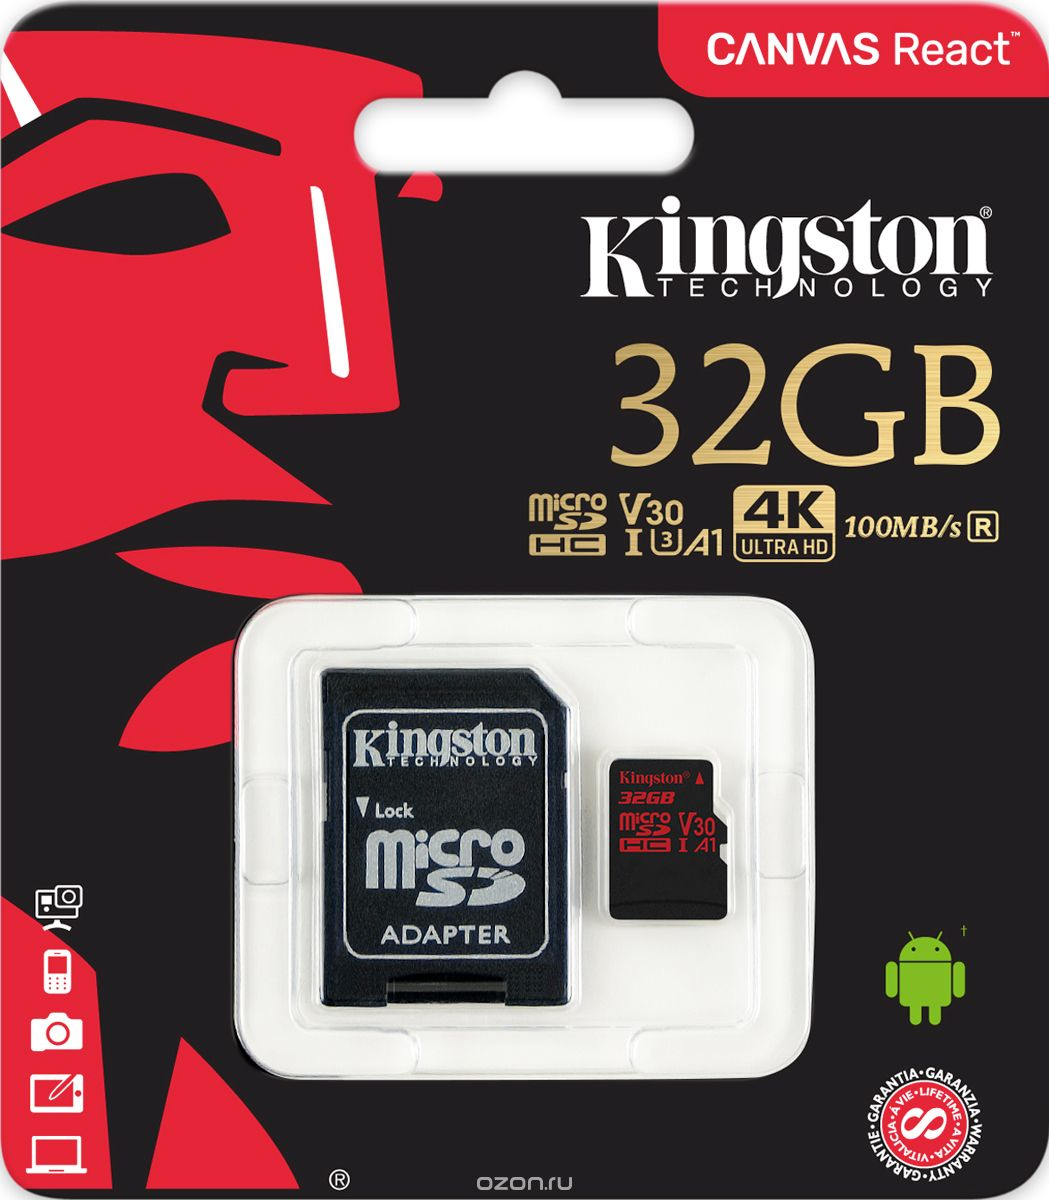 Флеш карта microSD 32GB Kingston Canvas React micro SDHC Class 10 UHS-I(U3 ) V30 100R/80W